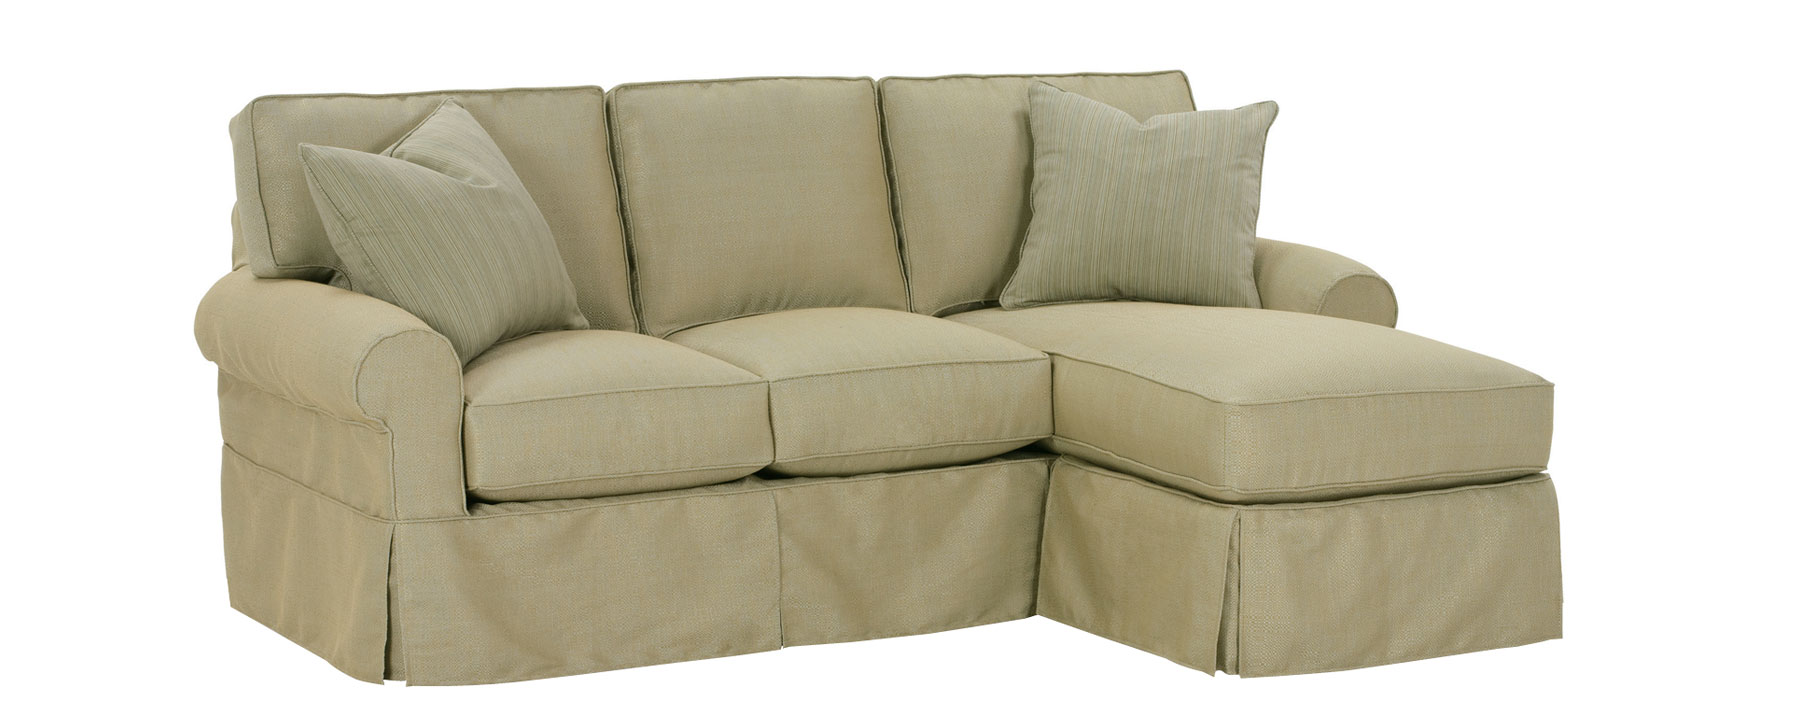 Christine Slipcovered Small Reversible Chaise Sectional Sofa. clubfurniture  sc 1 st  Club Furniture : sectional sofa with reversible chaise - Sectionals, Sofas & Couches